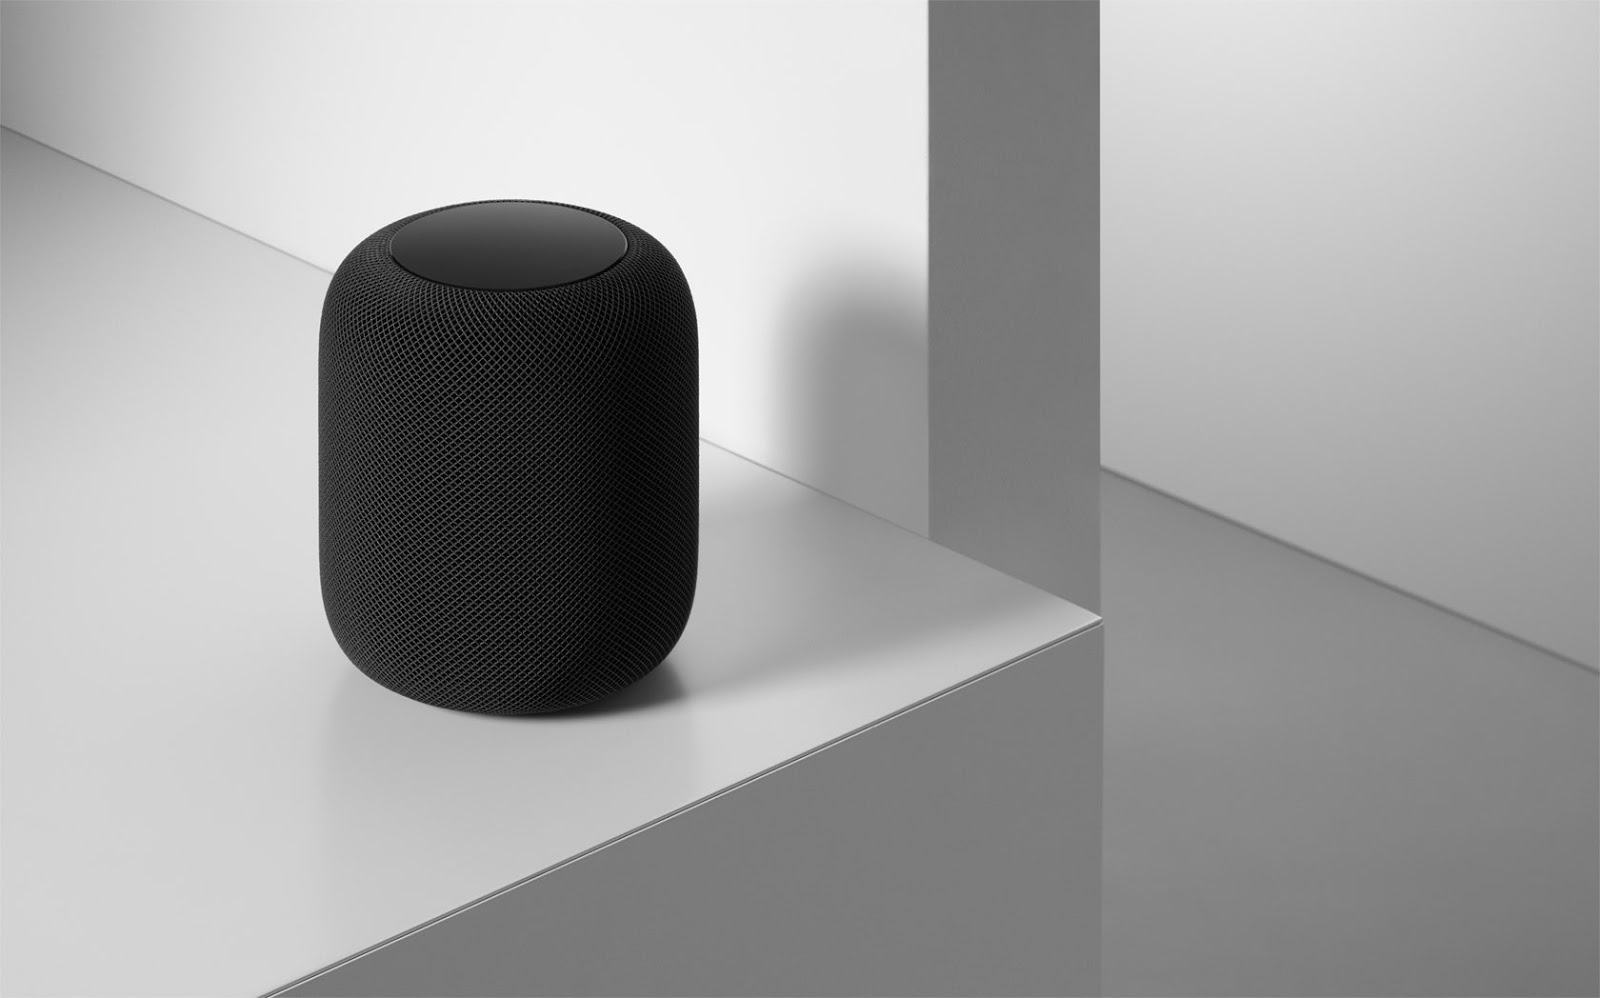 apple-homepod-now-runs-tvos